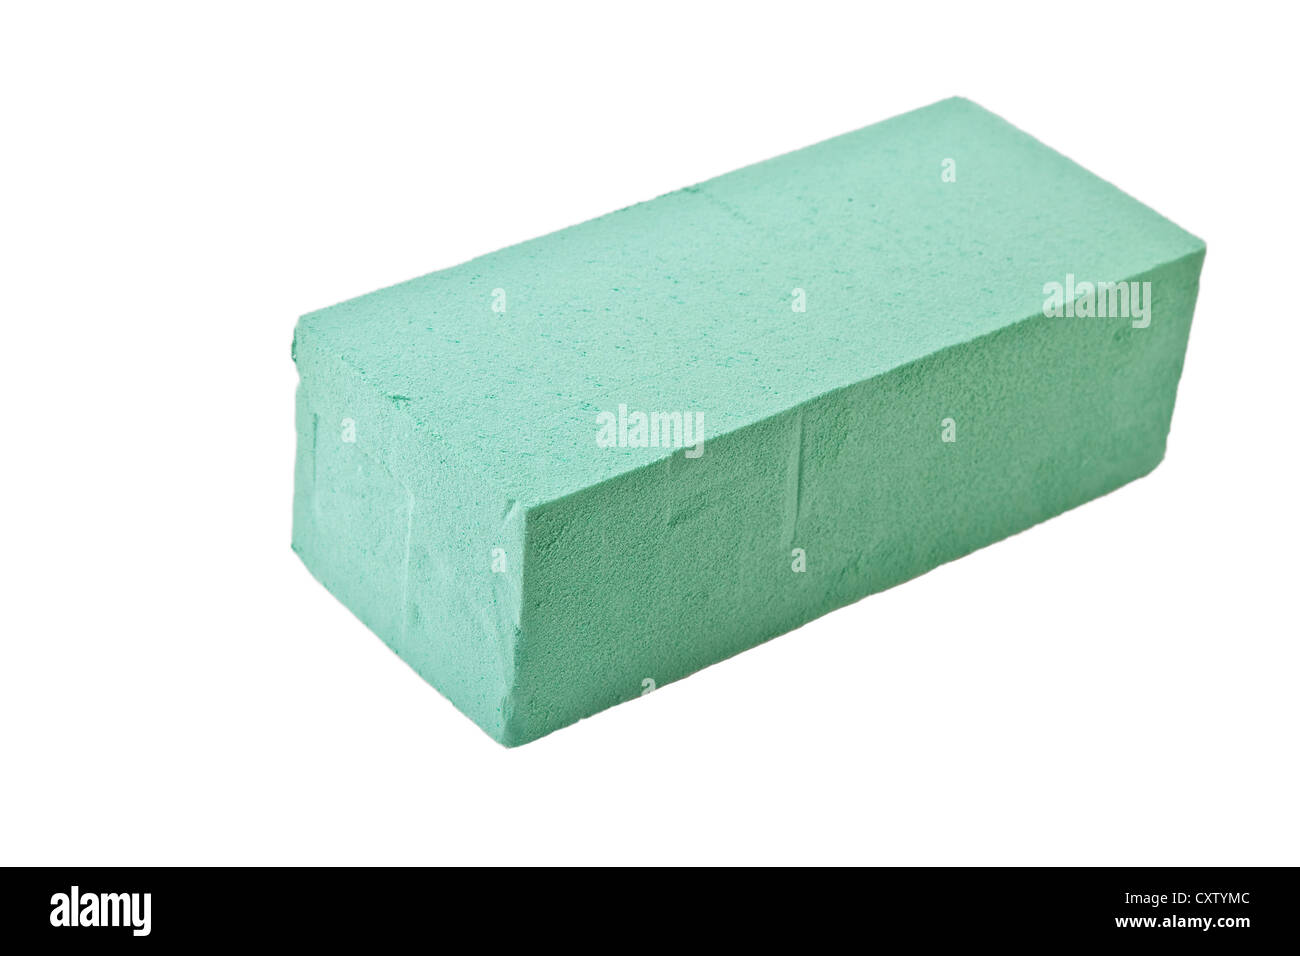 a block or brick of wet floral foam used by florist in the of flower using fresh flowers